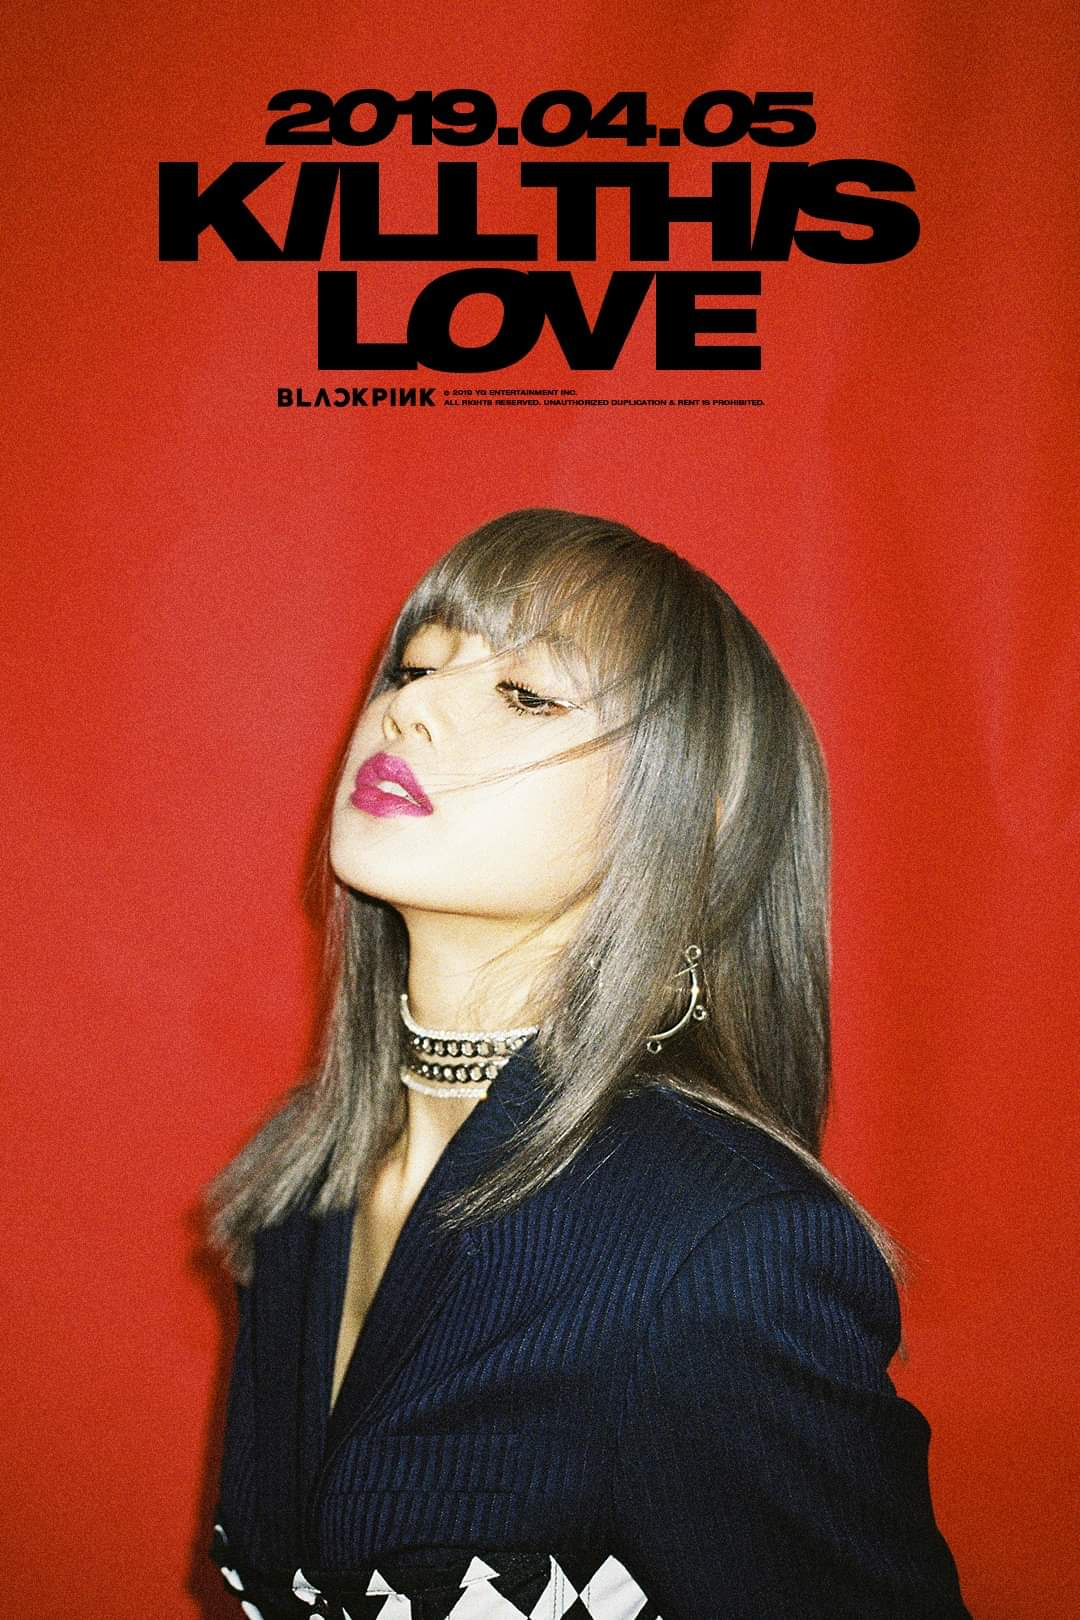 Free Download Black Pink Images Blackpink Kill This Love Lisa Poster Hd 1080x1620 For Your Desktop Mobile Tablet Explore 12 Blackpink Kill This Love Wallpapers Blackpink Kill This Love